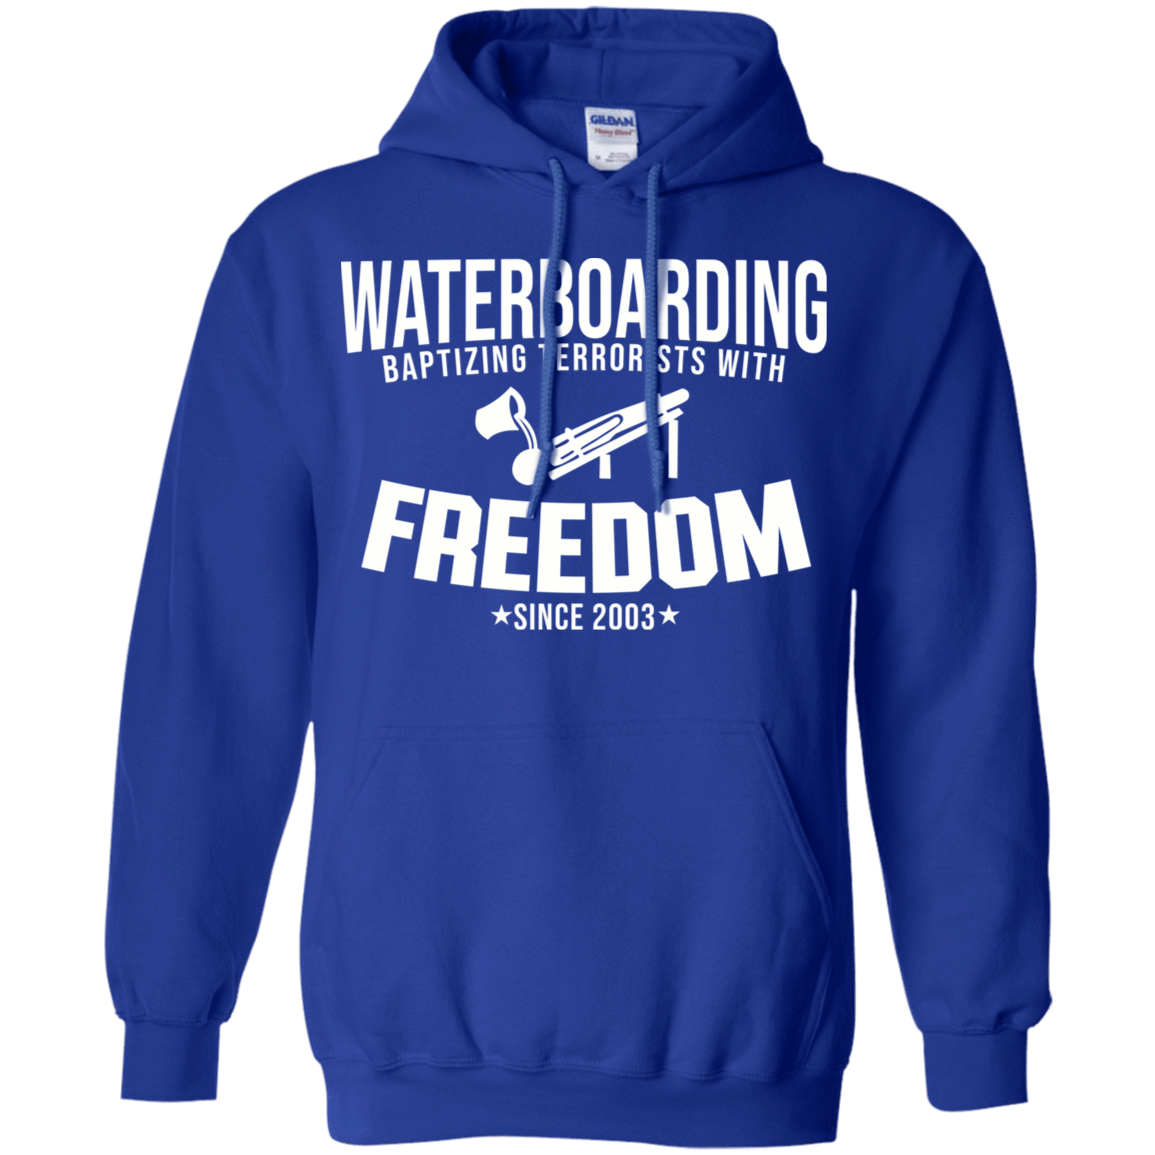 Waterboarding Baptising Terrorists With Freedom 541-4765-74046430-23175 - Tee Ript